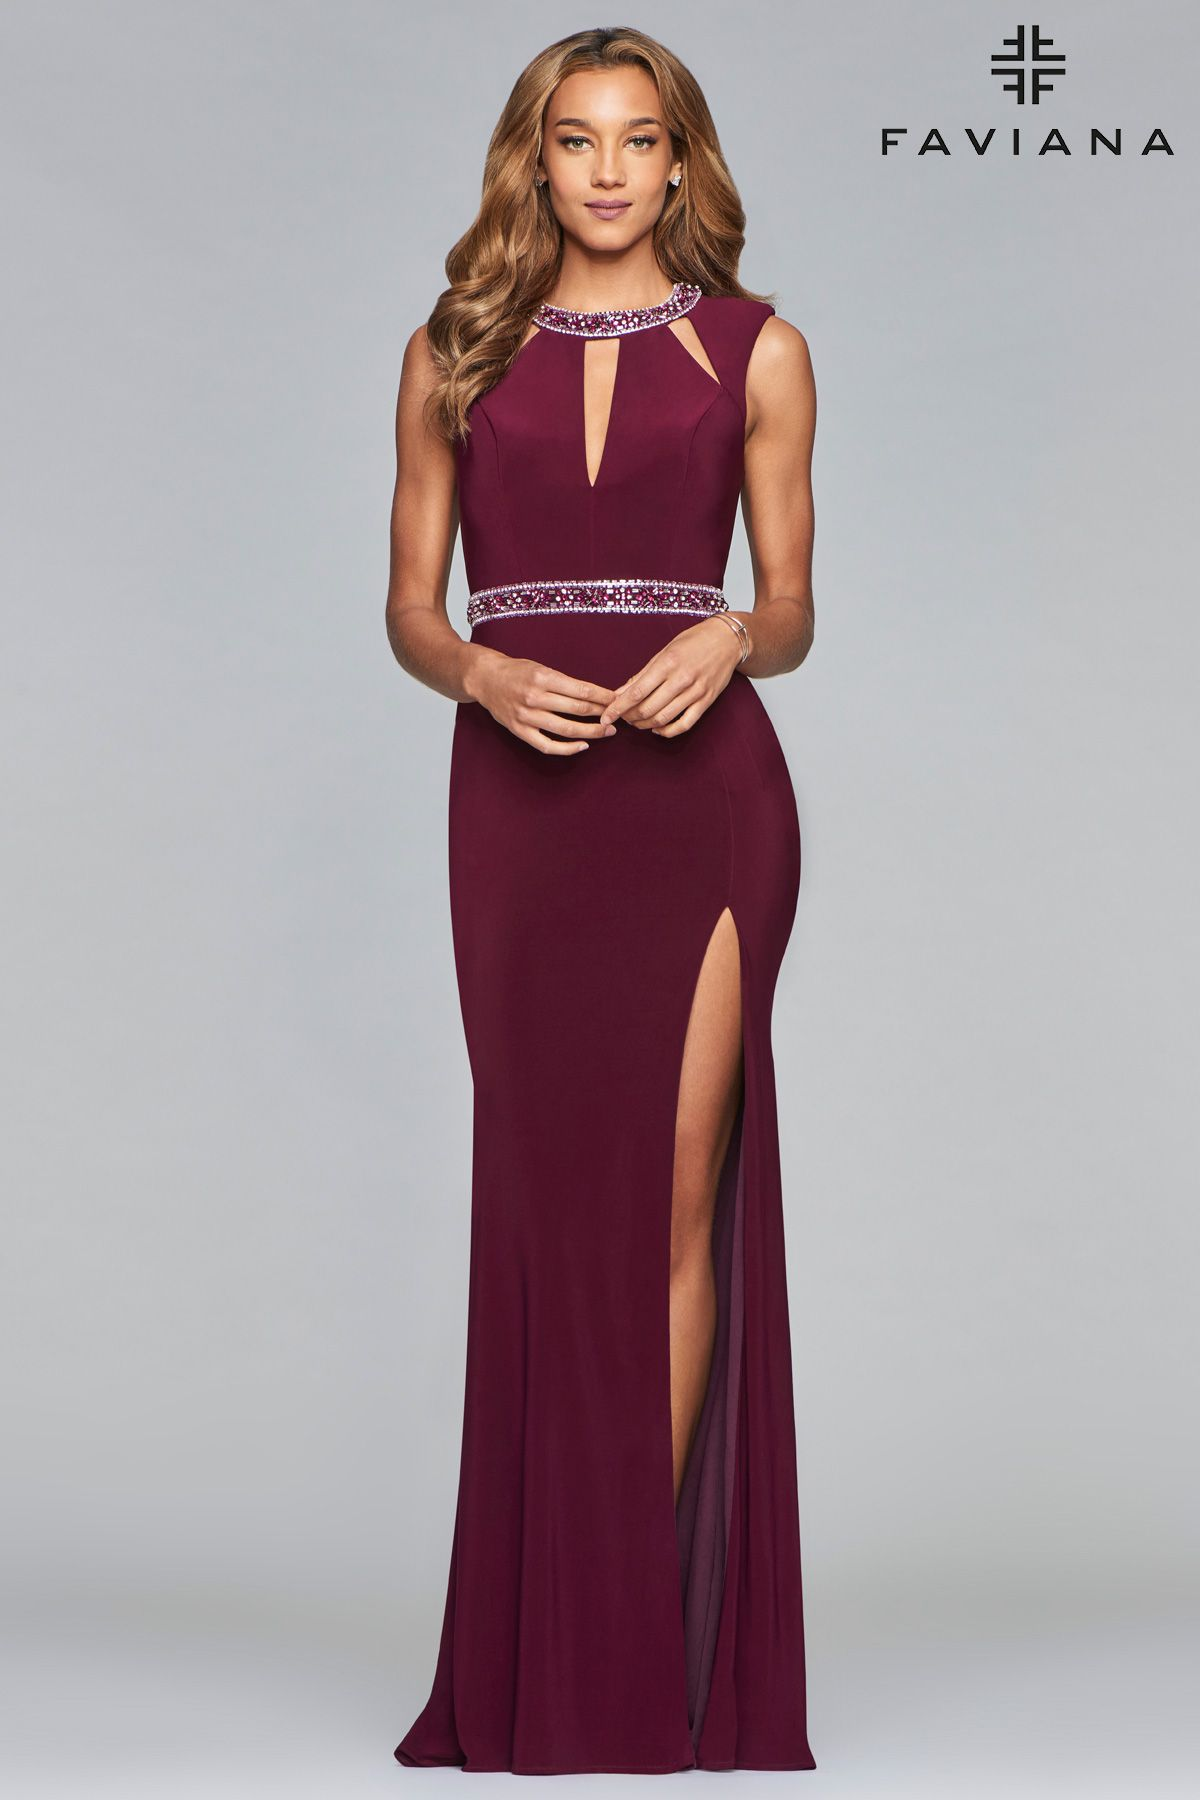 S in fashion pinterest dresses evening gowns and